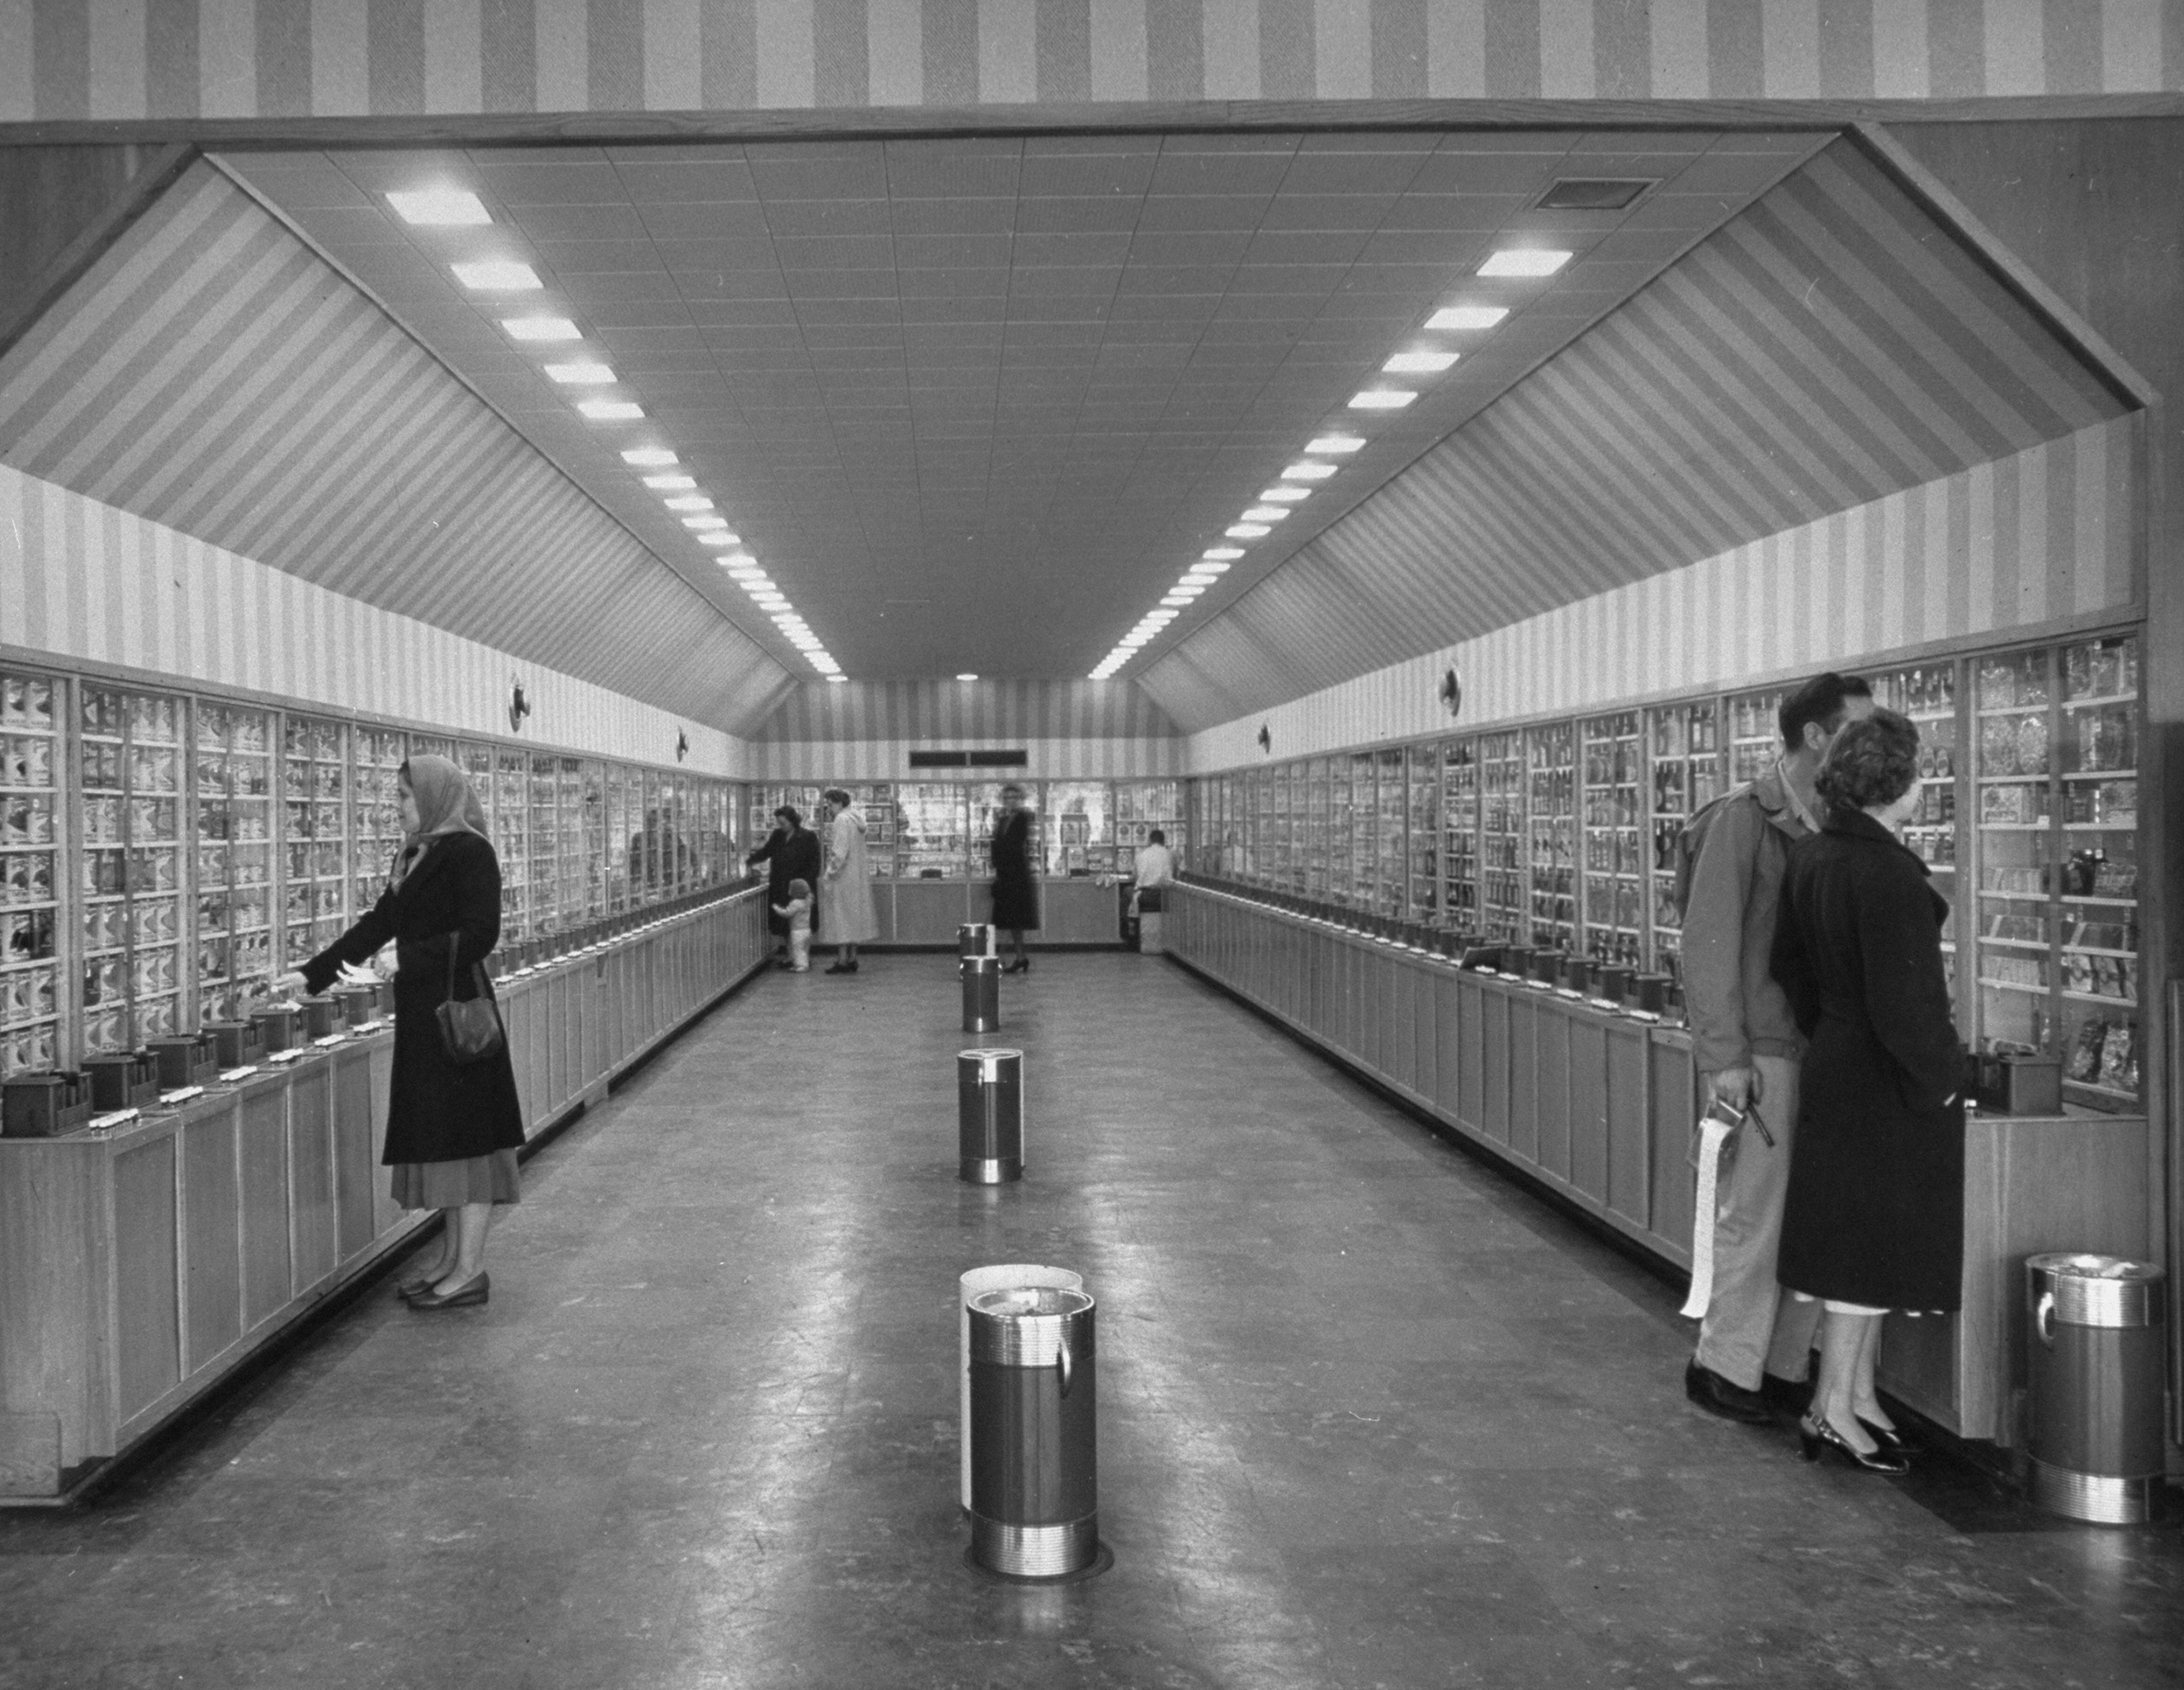 Keedoozle, a fully automated grocery store, Memphis, Tenn., 1948.